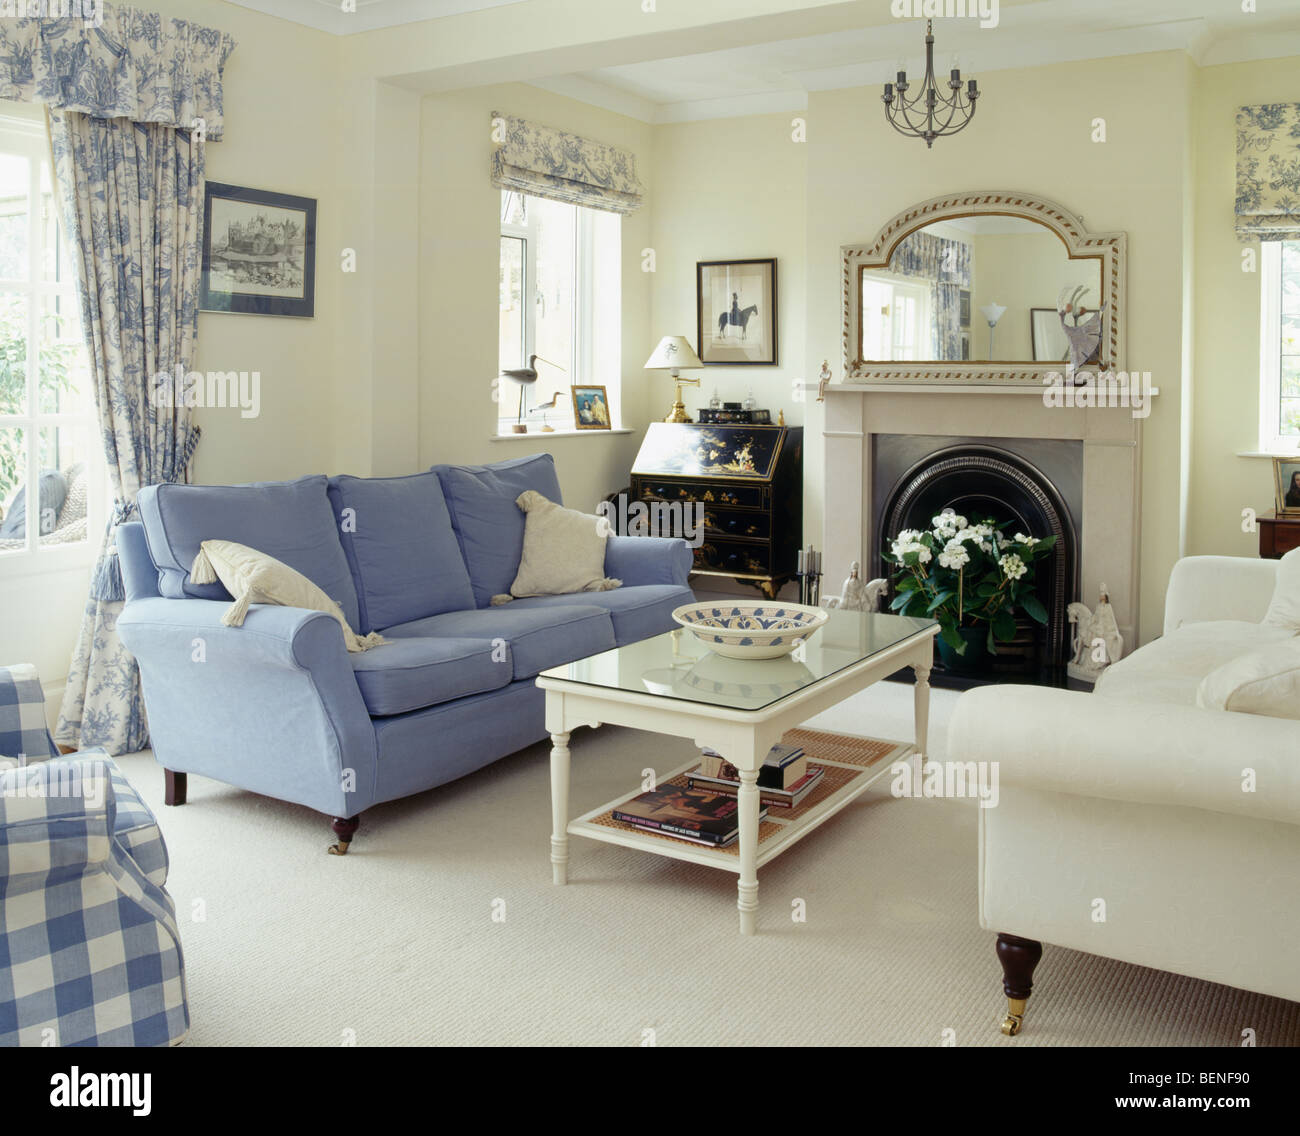 Blue and cream sofas on either side of fireplace in cream